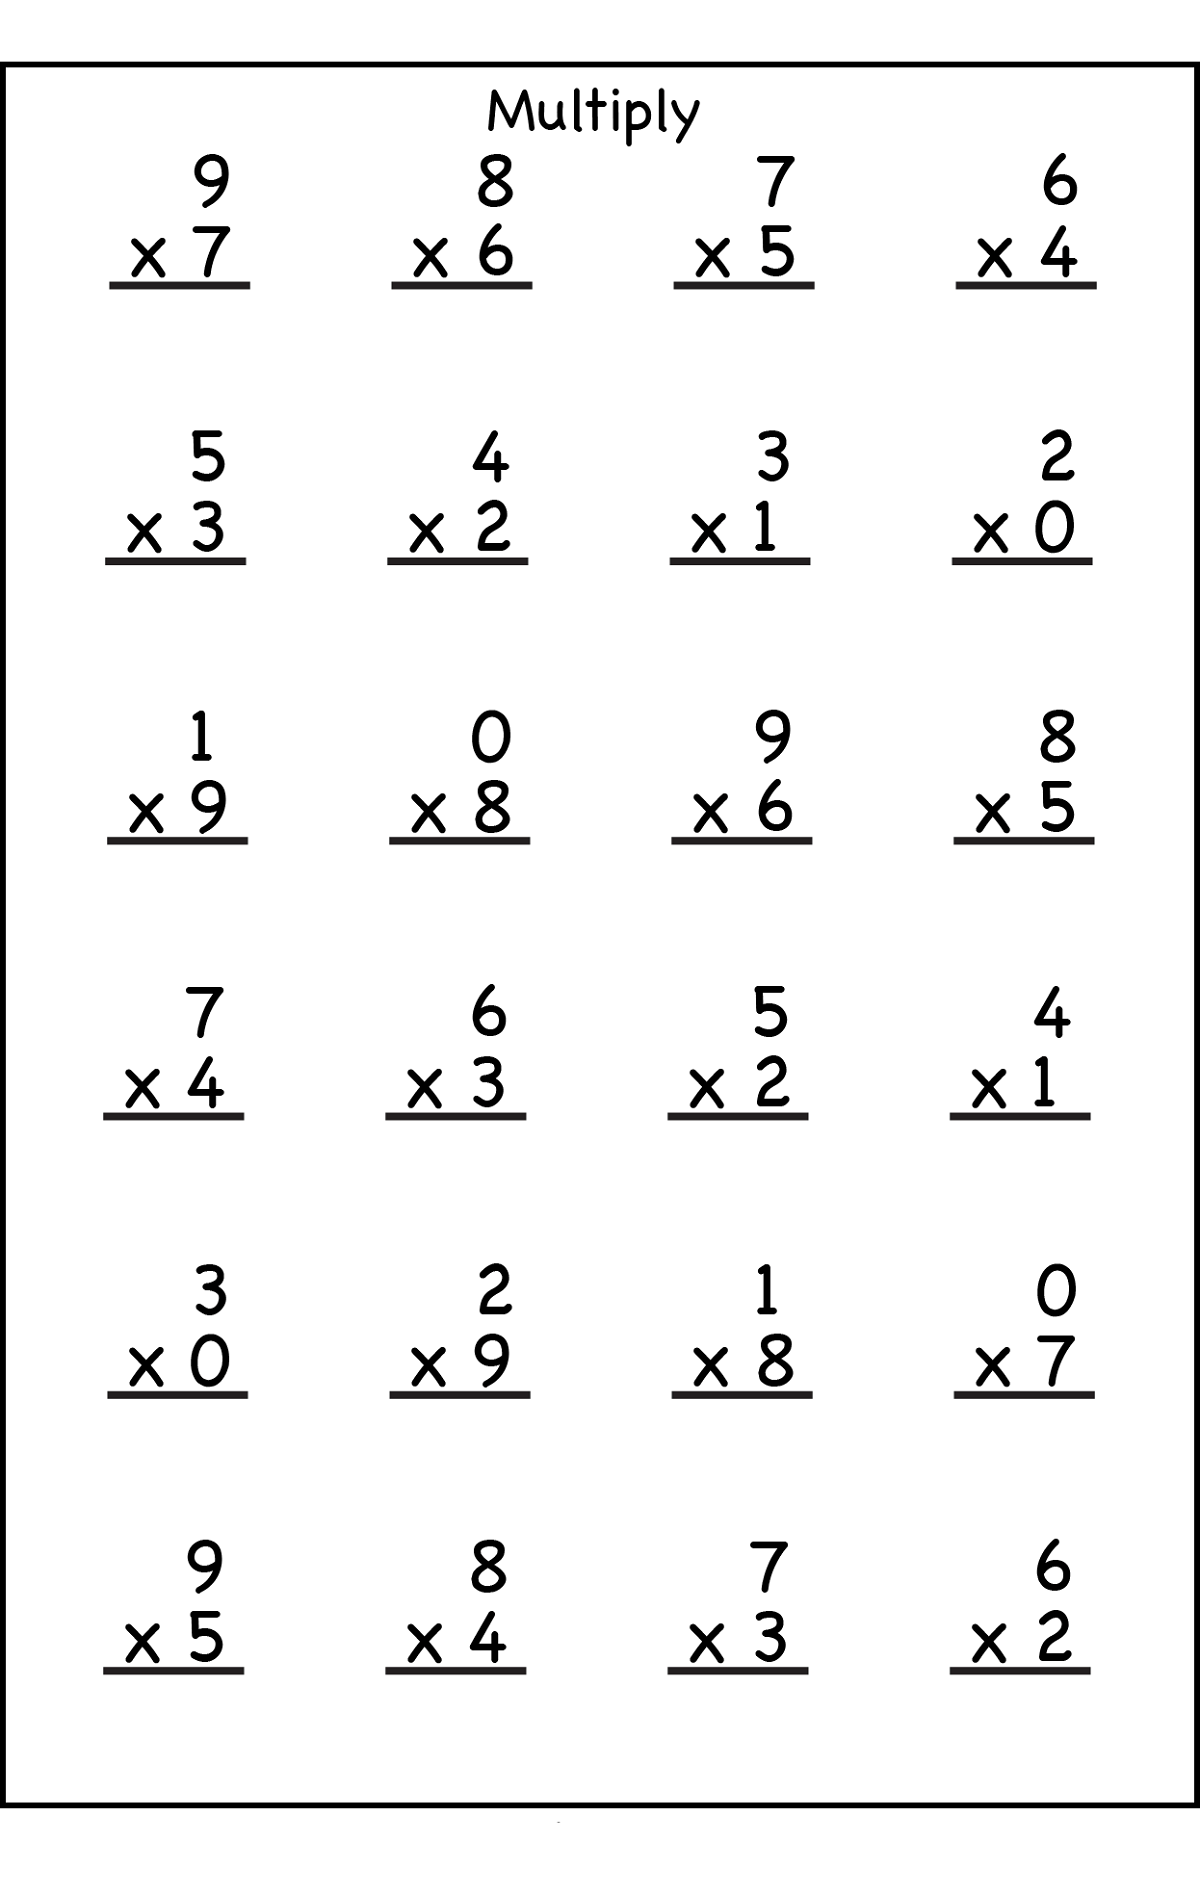 Multiplication Worksheet For Grade School